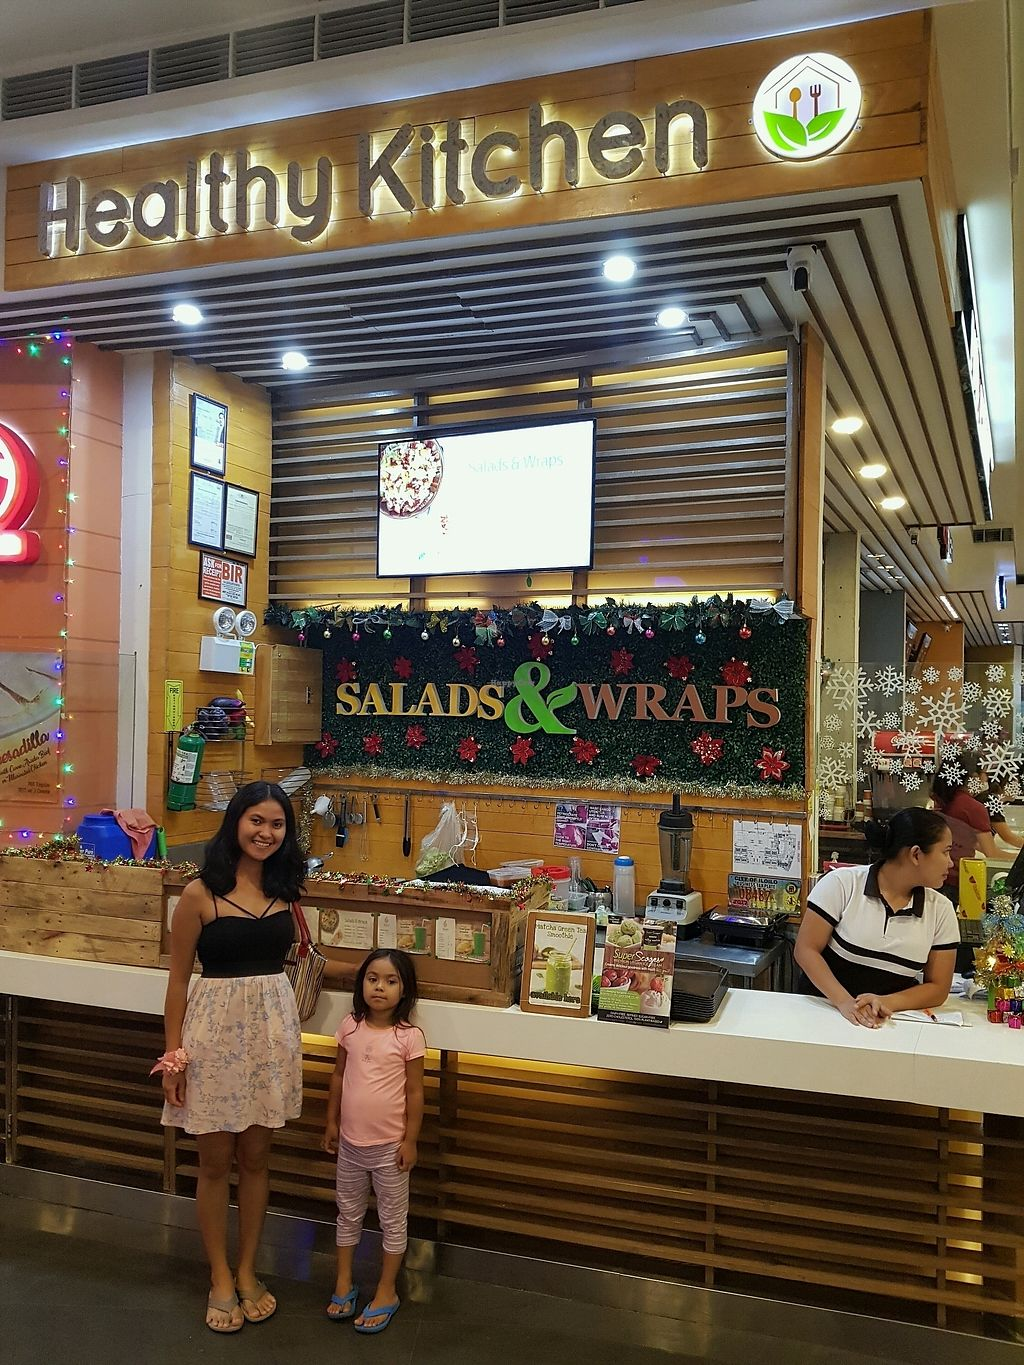 """Photo of Live  by <a href=""""/members/profile/LuckyParadise"""">LuckyParadise</a> <br/>food stand SM City foodcourt 2nd floor <br/> December 10, 2017  - <a href='/contact/abuse/image/101688/334247'>Report</a>"""